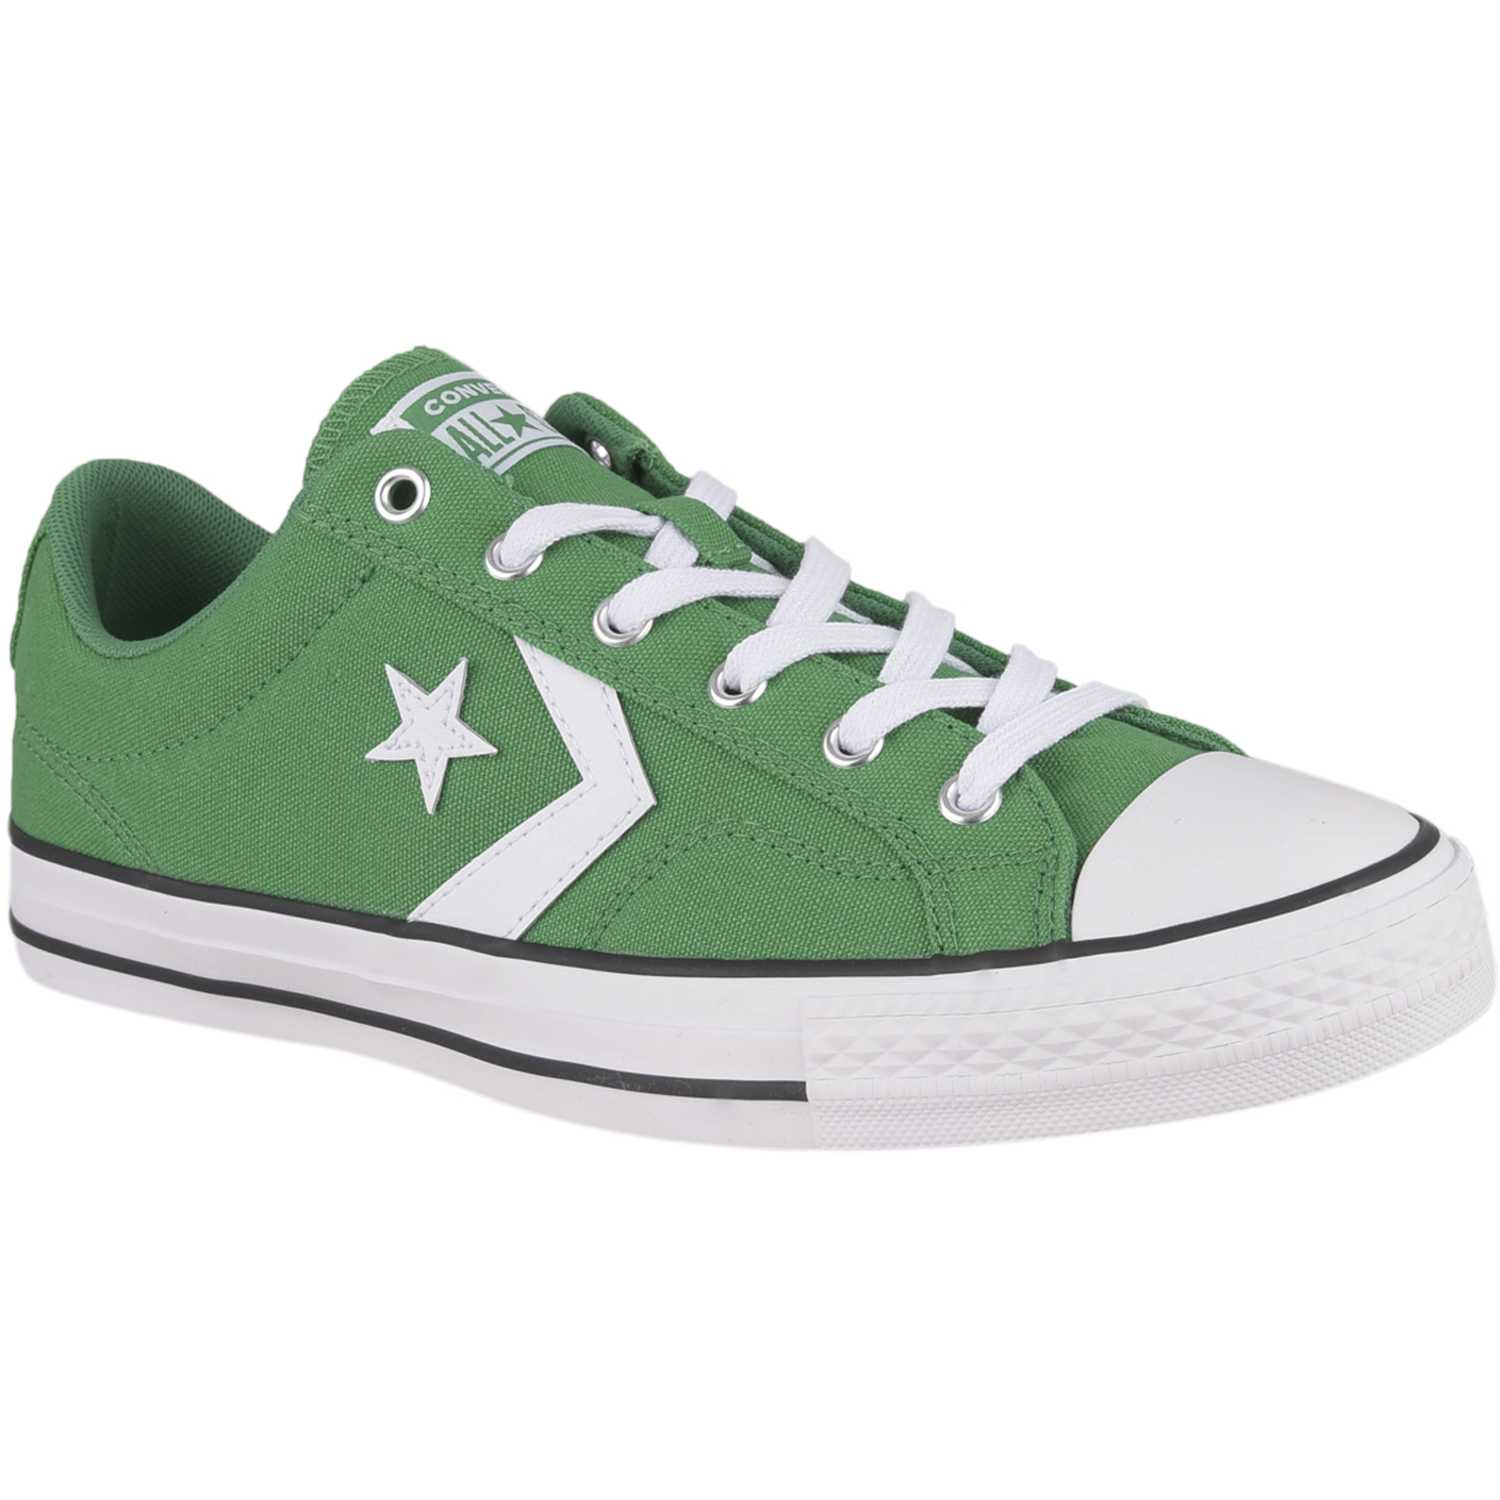 Zapatilla de Hombre Converse Verde / blanco star player canvas